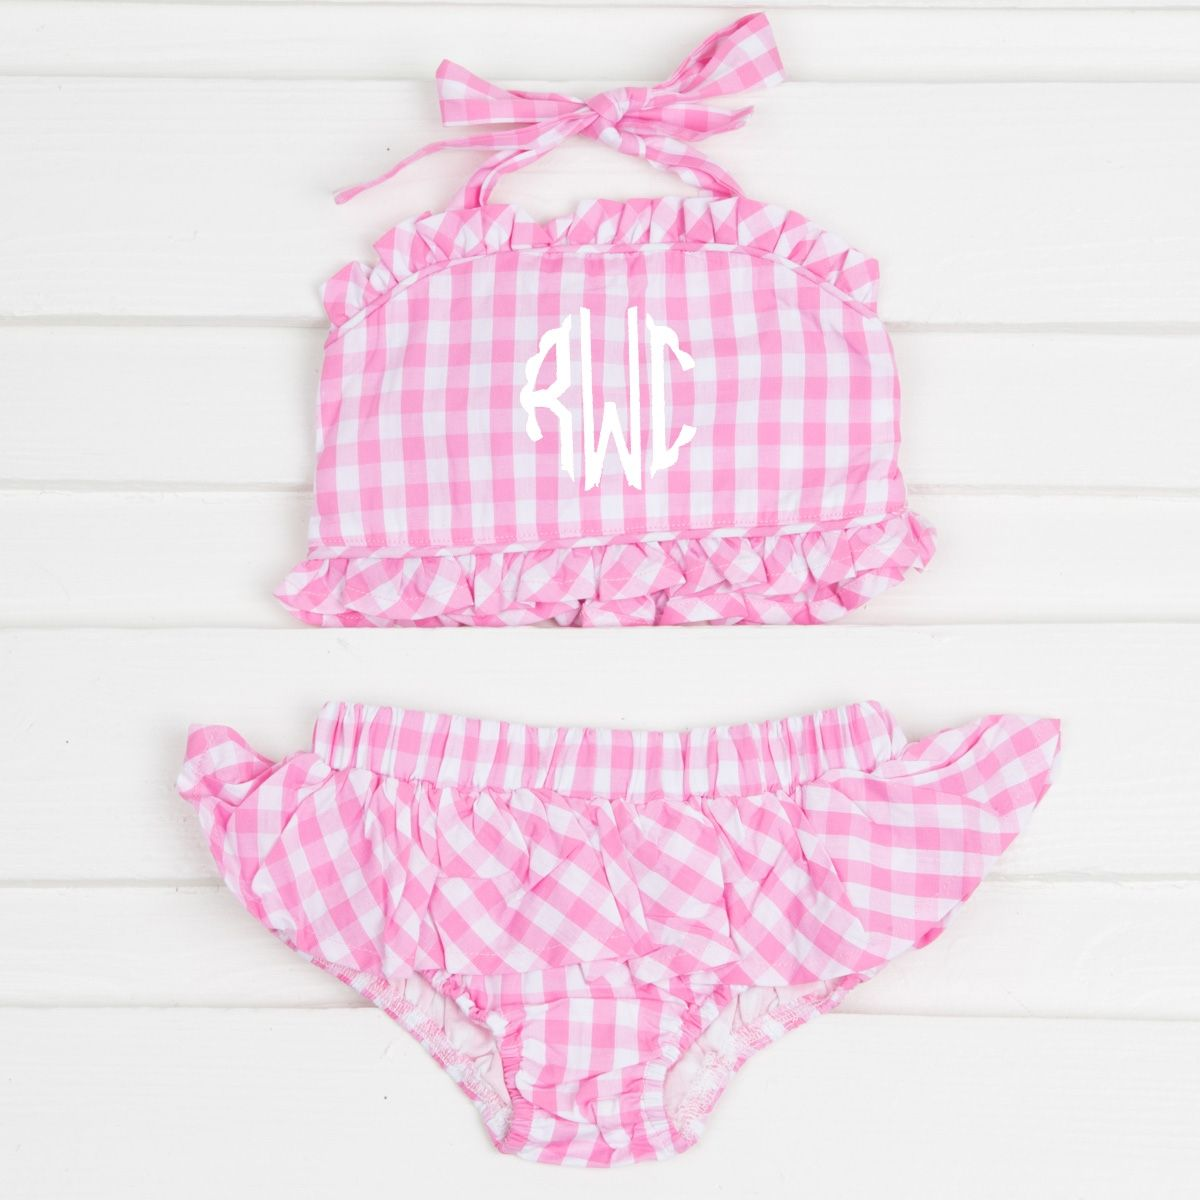 3fcb498436bd65 Two piece ruffle swimsuit on a pink check fabric. Tie in the back of the  neck. Perfect for summer fun! Lined. Cotton blend. **NOT LYCRA**  #smockedauctions ...